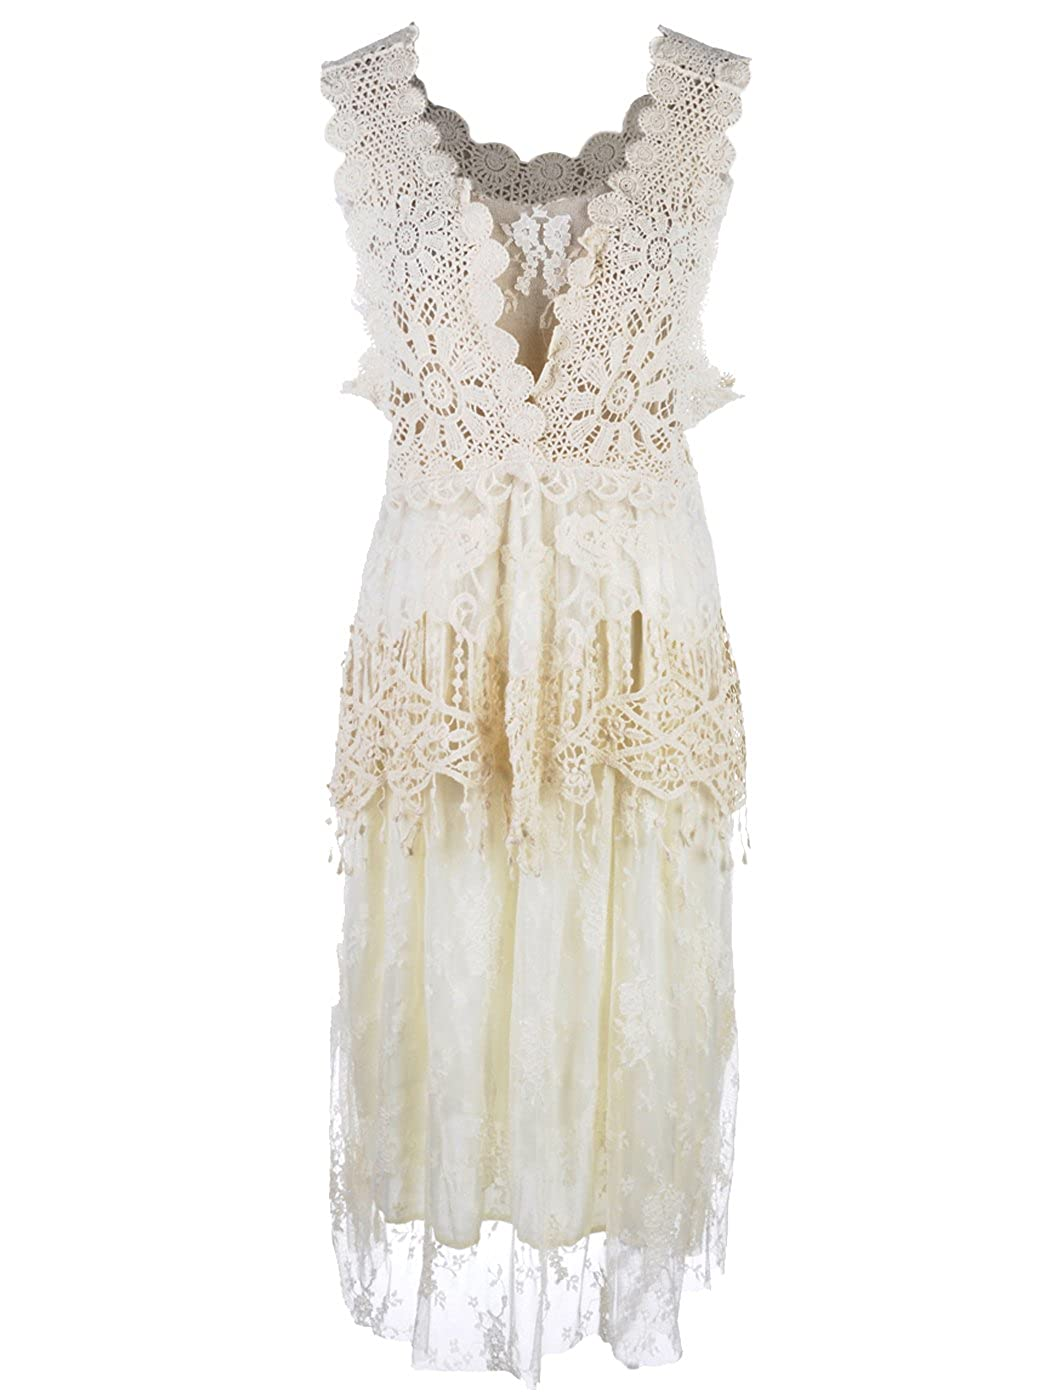 Roaring 20s Costumes- Flapper Costumes, Gangster Costumes Anna-Kaci Womens Vintage Granny Influence Embroidery Detail Lace Ruffle Dress $47.90 AT vintagedancer.com